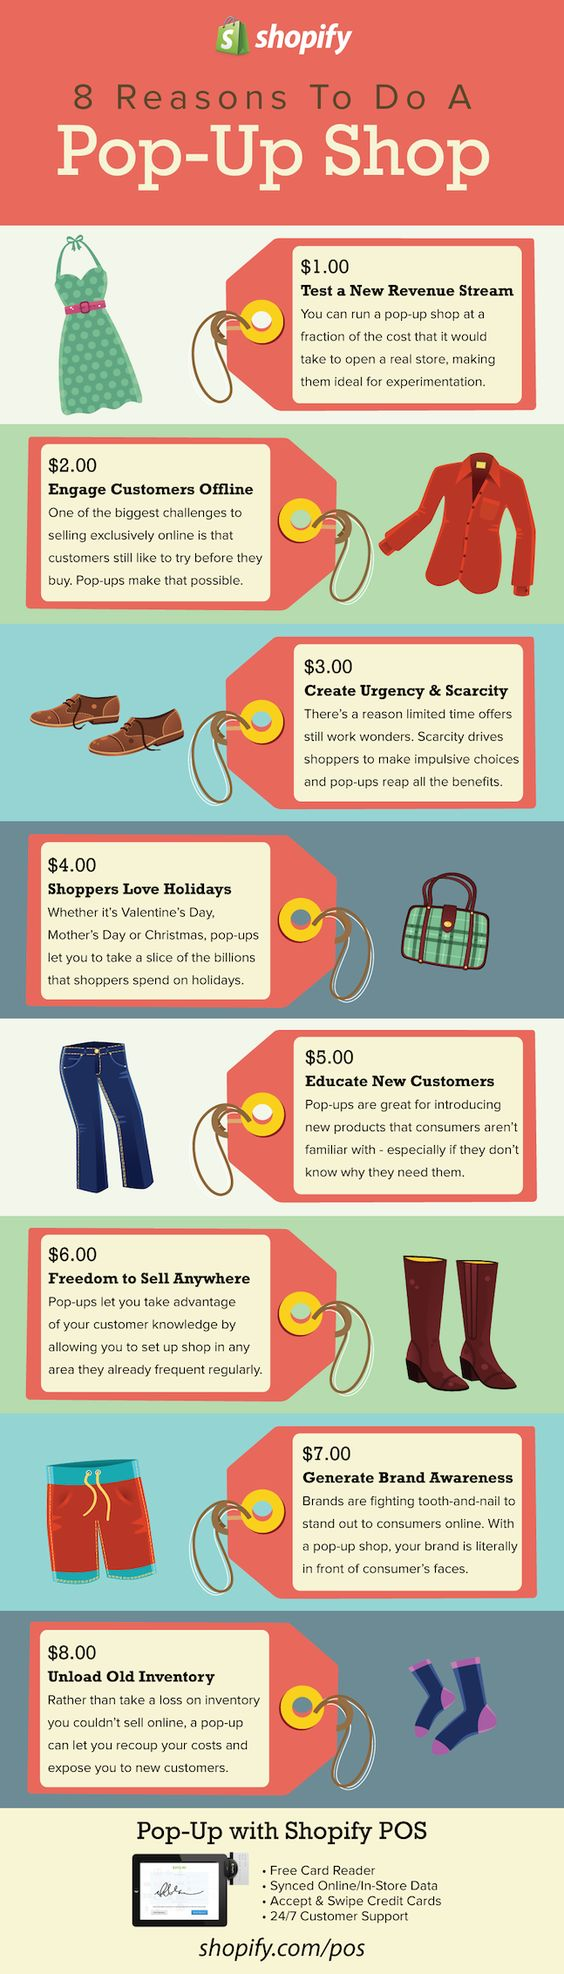 8 Reasons Why You Need To Do A Pop-Up Shop